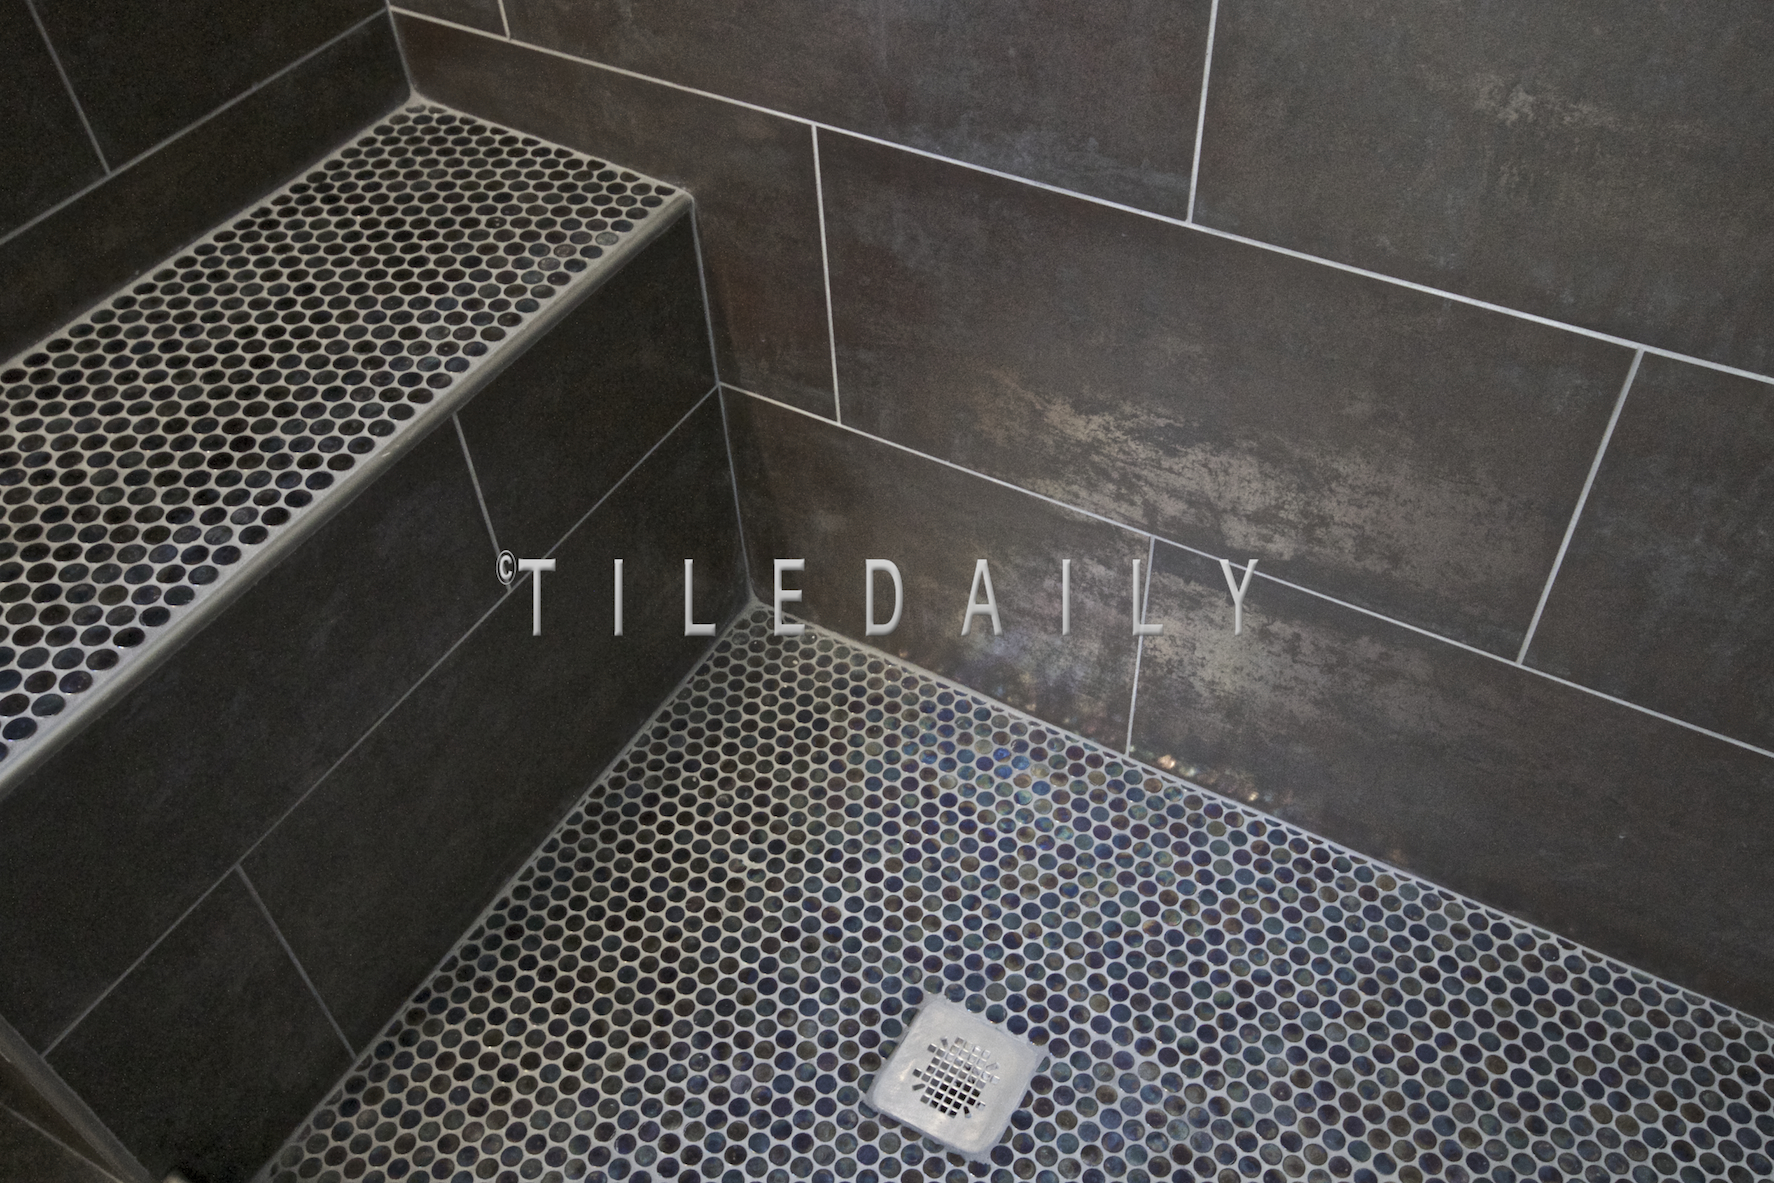 Metallic Iron Shower Wall And Penny Round Shower Floor Tiledaily